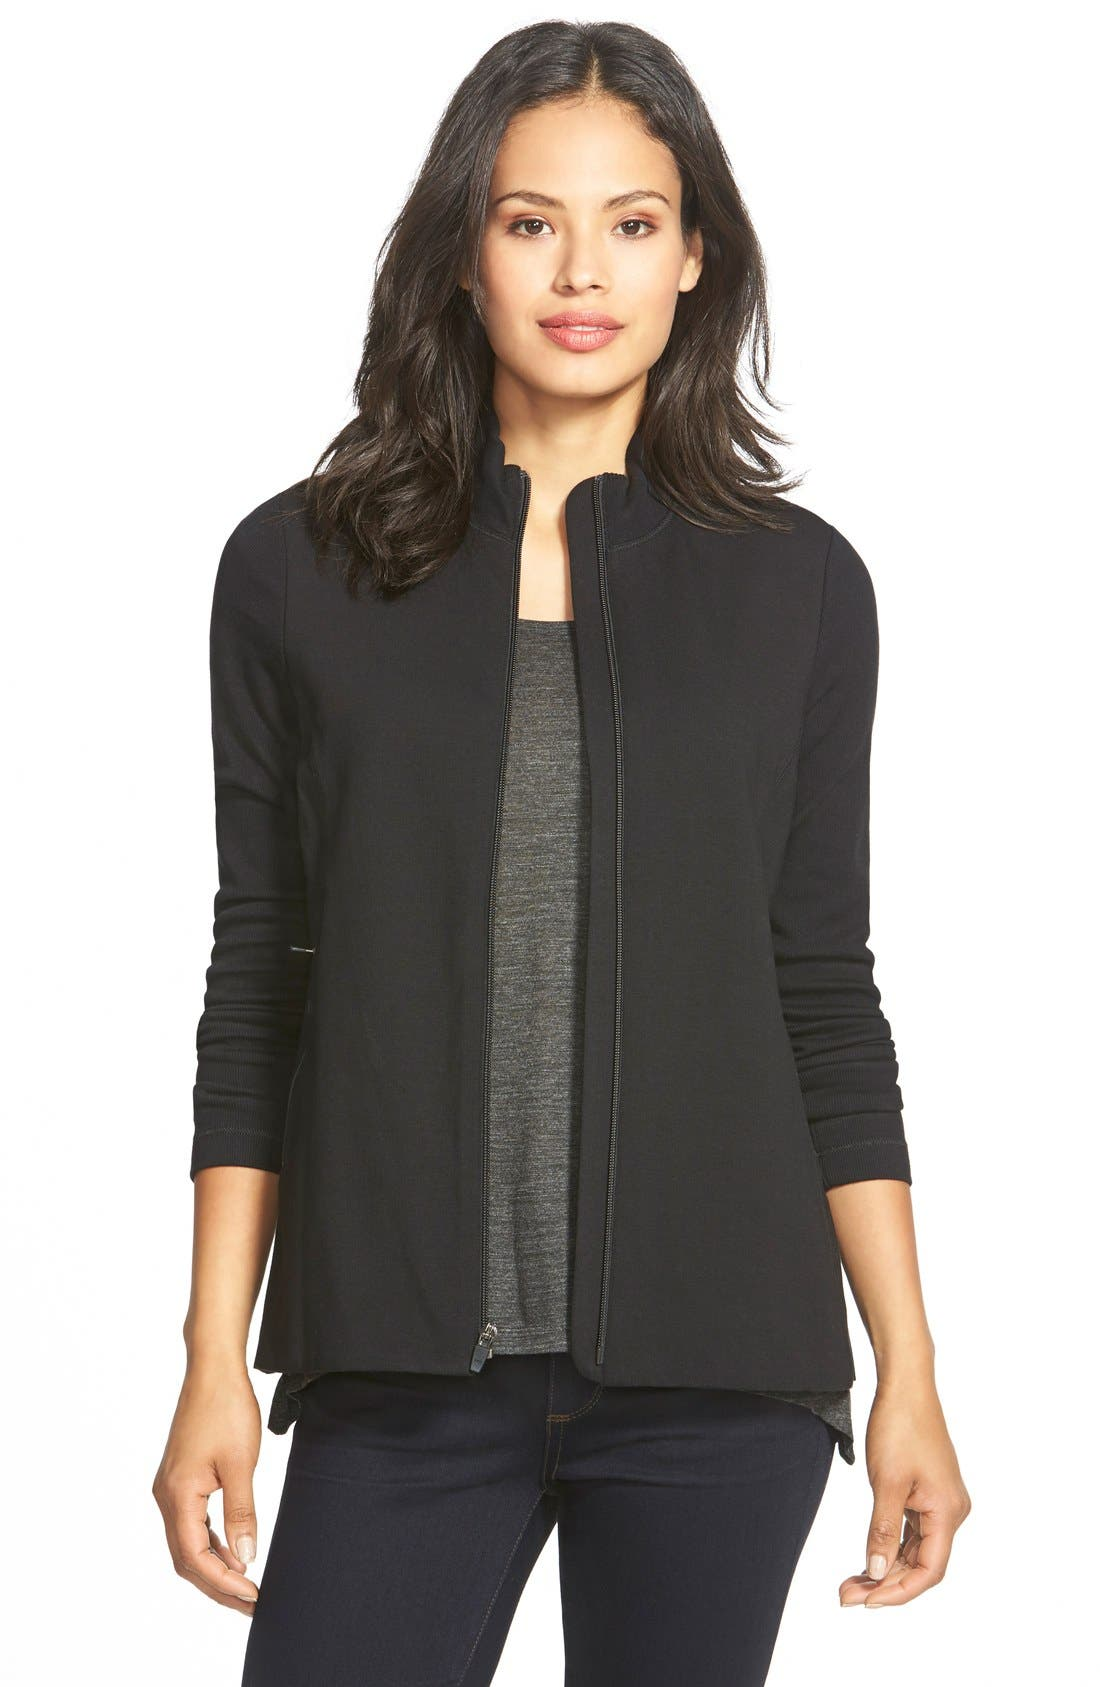 Alternate Image 1 Selected - Eileen Fisher Mixed Organic Cotton Stretch Knit Jacket